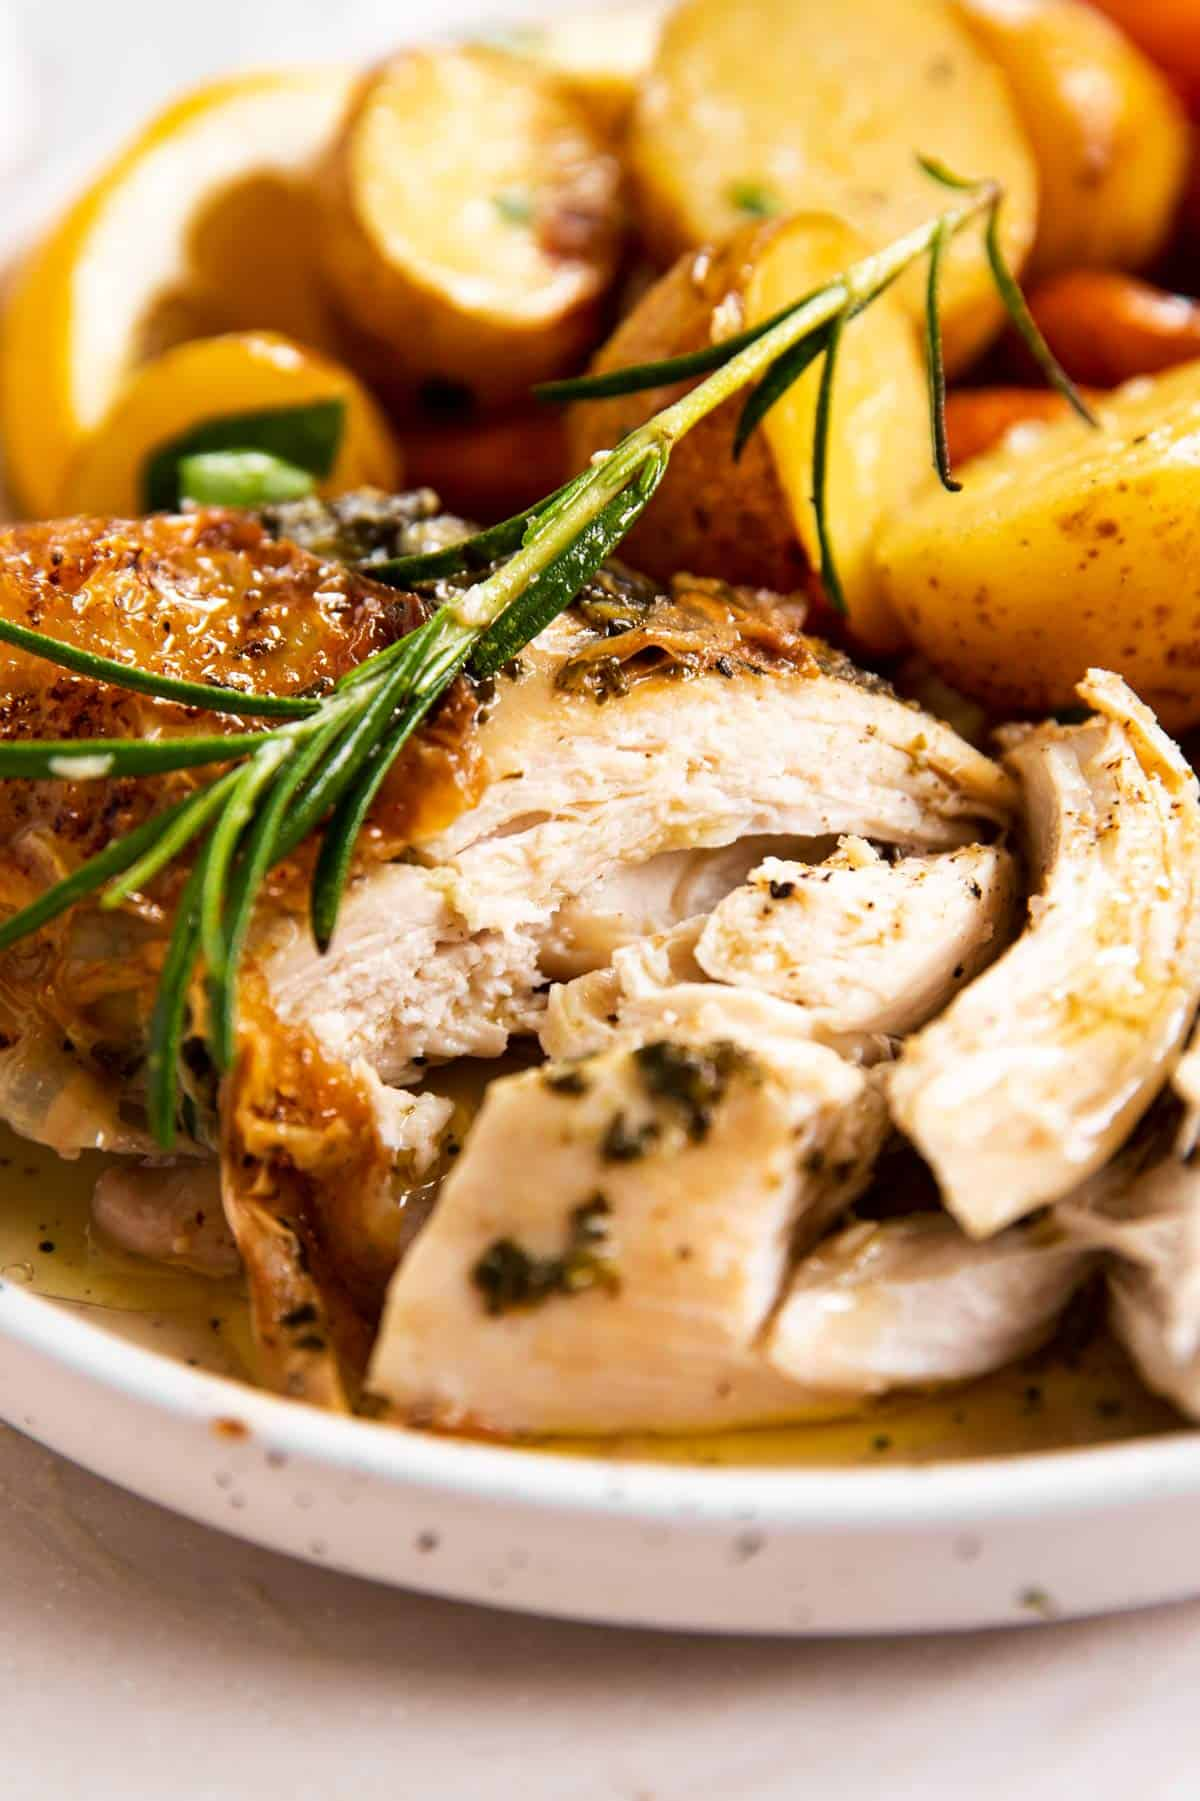 close up view of sliced roasted chicken breast on plate with fresh rosemary, carrots and potatoes